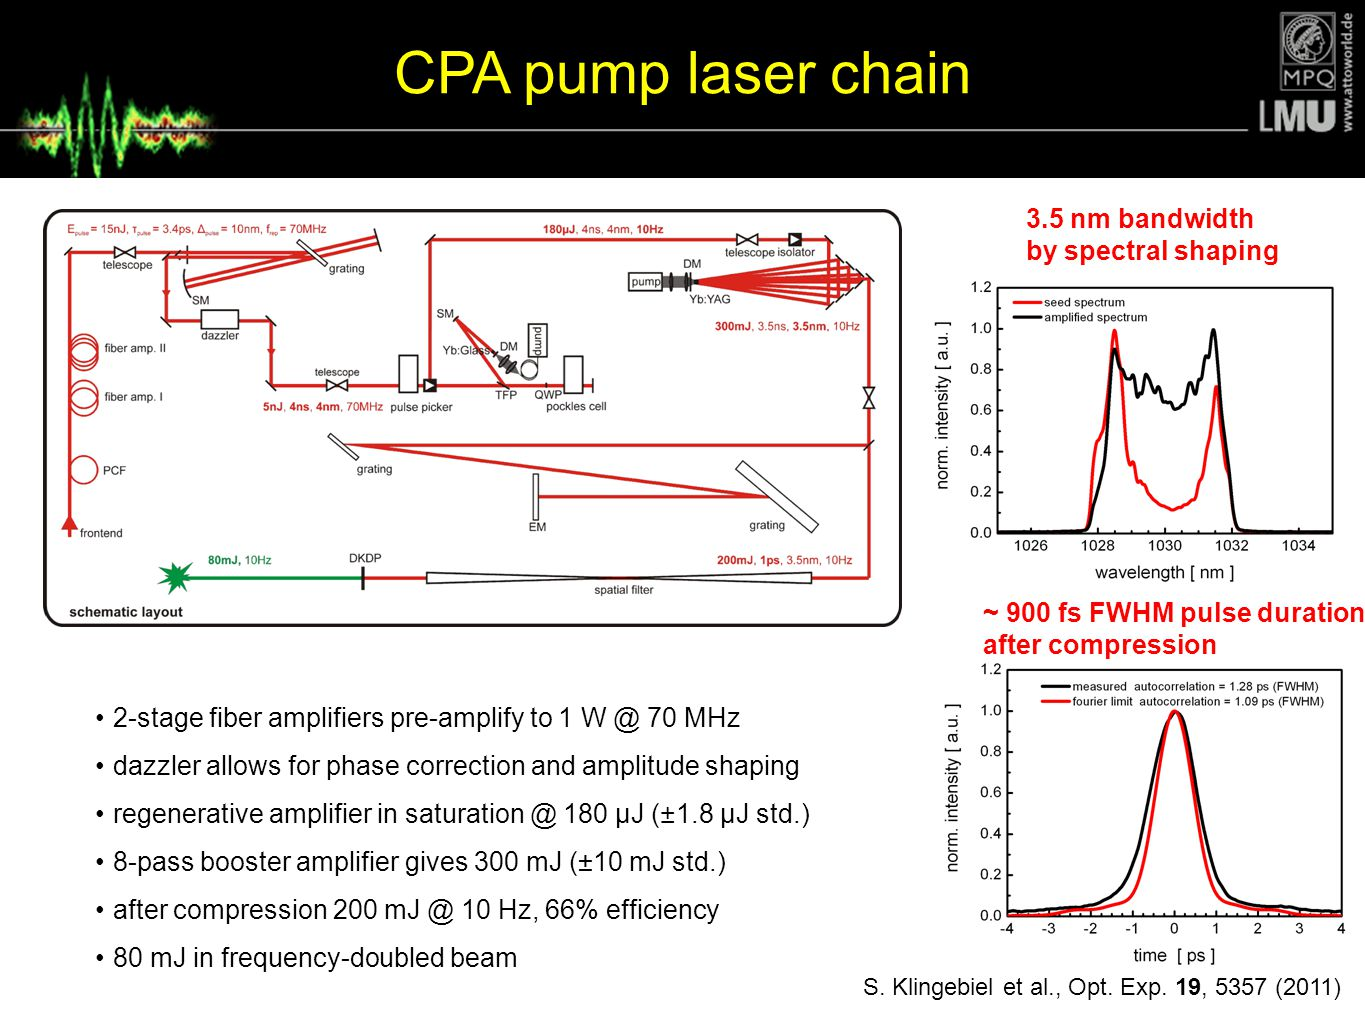 CPA pump laser chain 3.5 nm bandwidth by spectral shaping